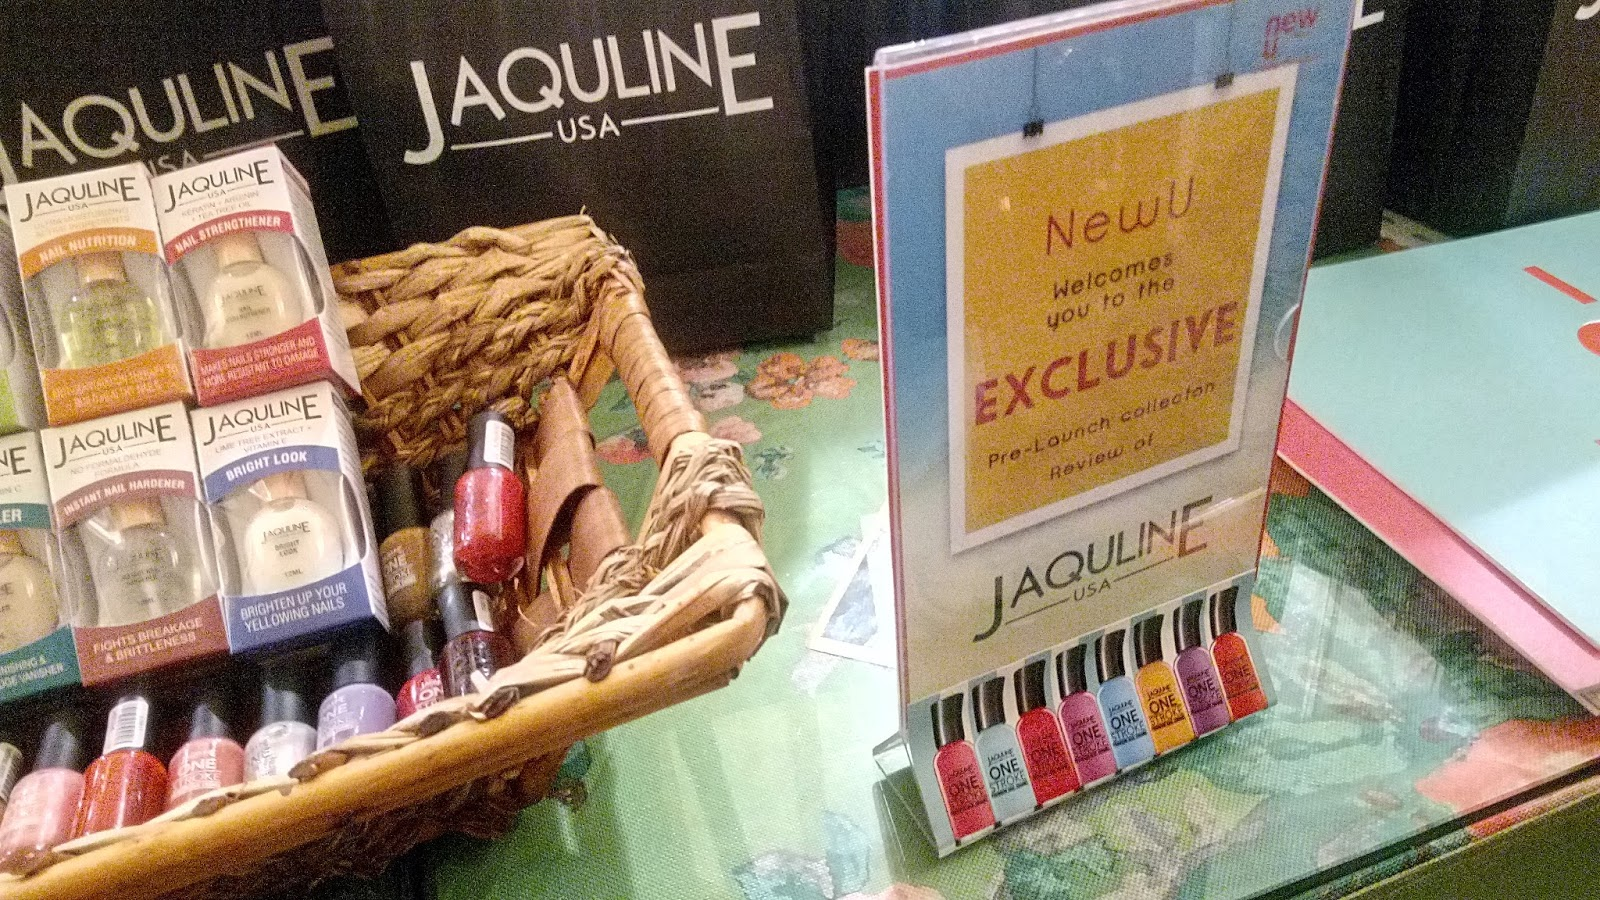 Jaquline USA Launch Event by Dabur New U ( Event Coverage)